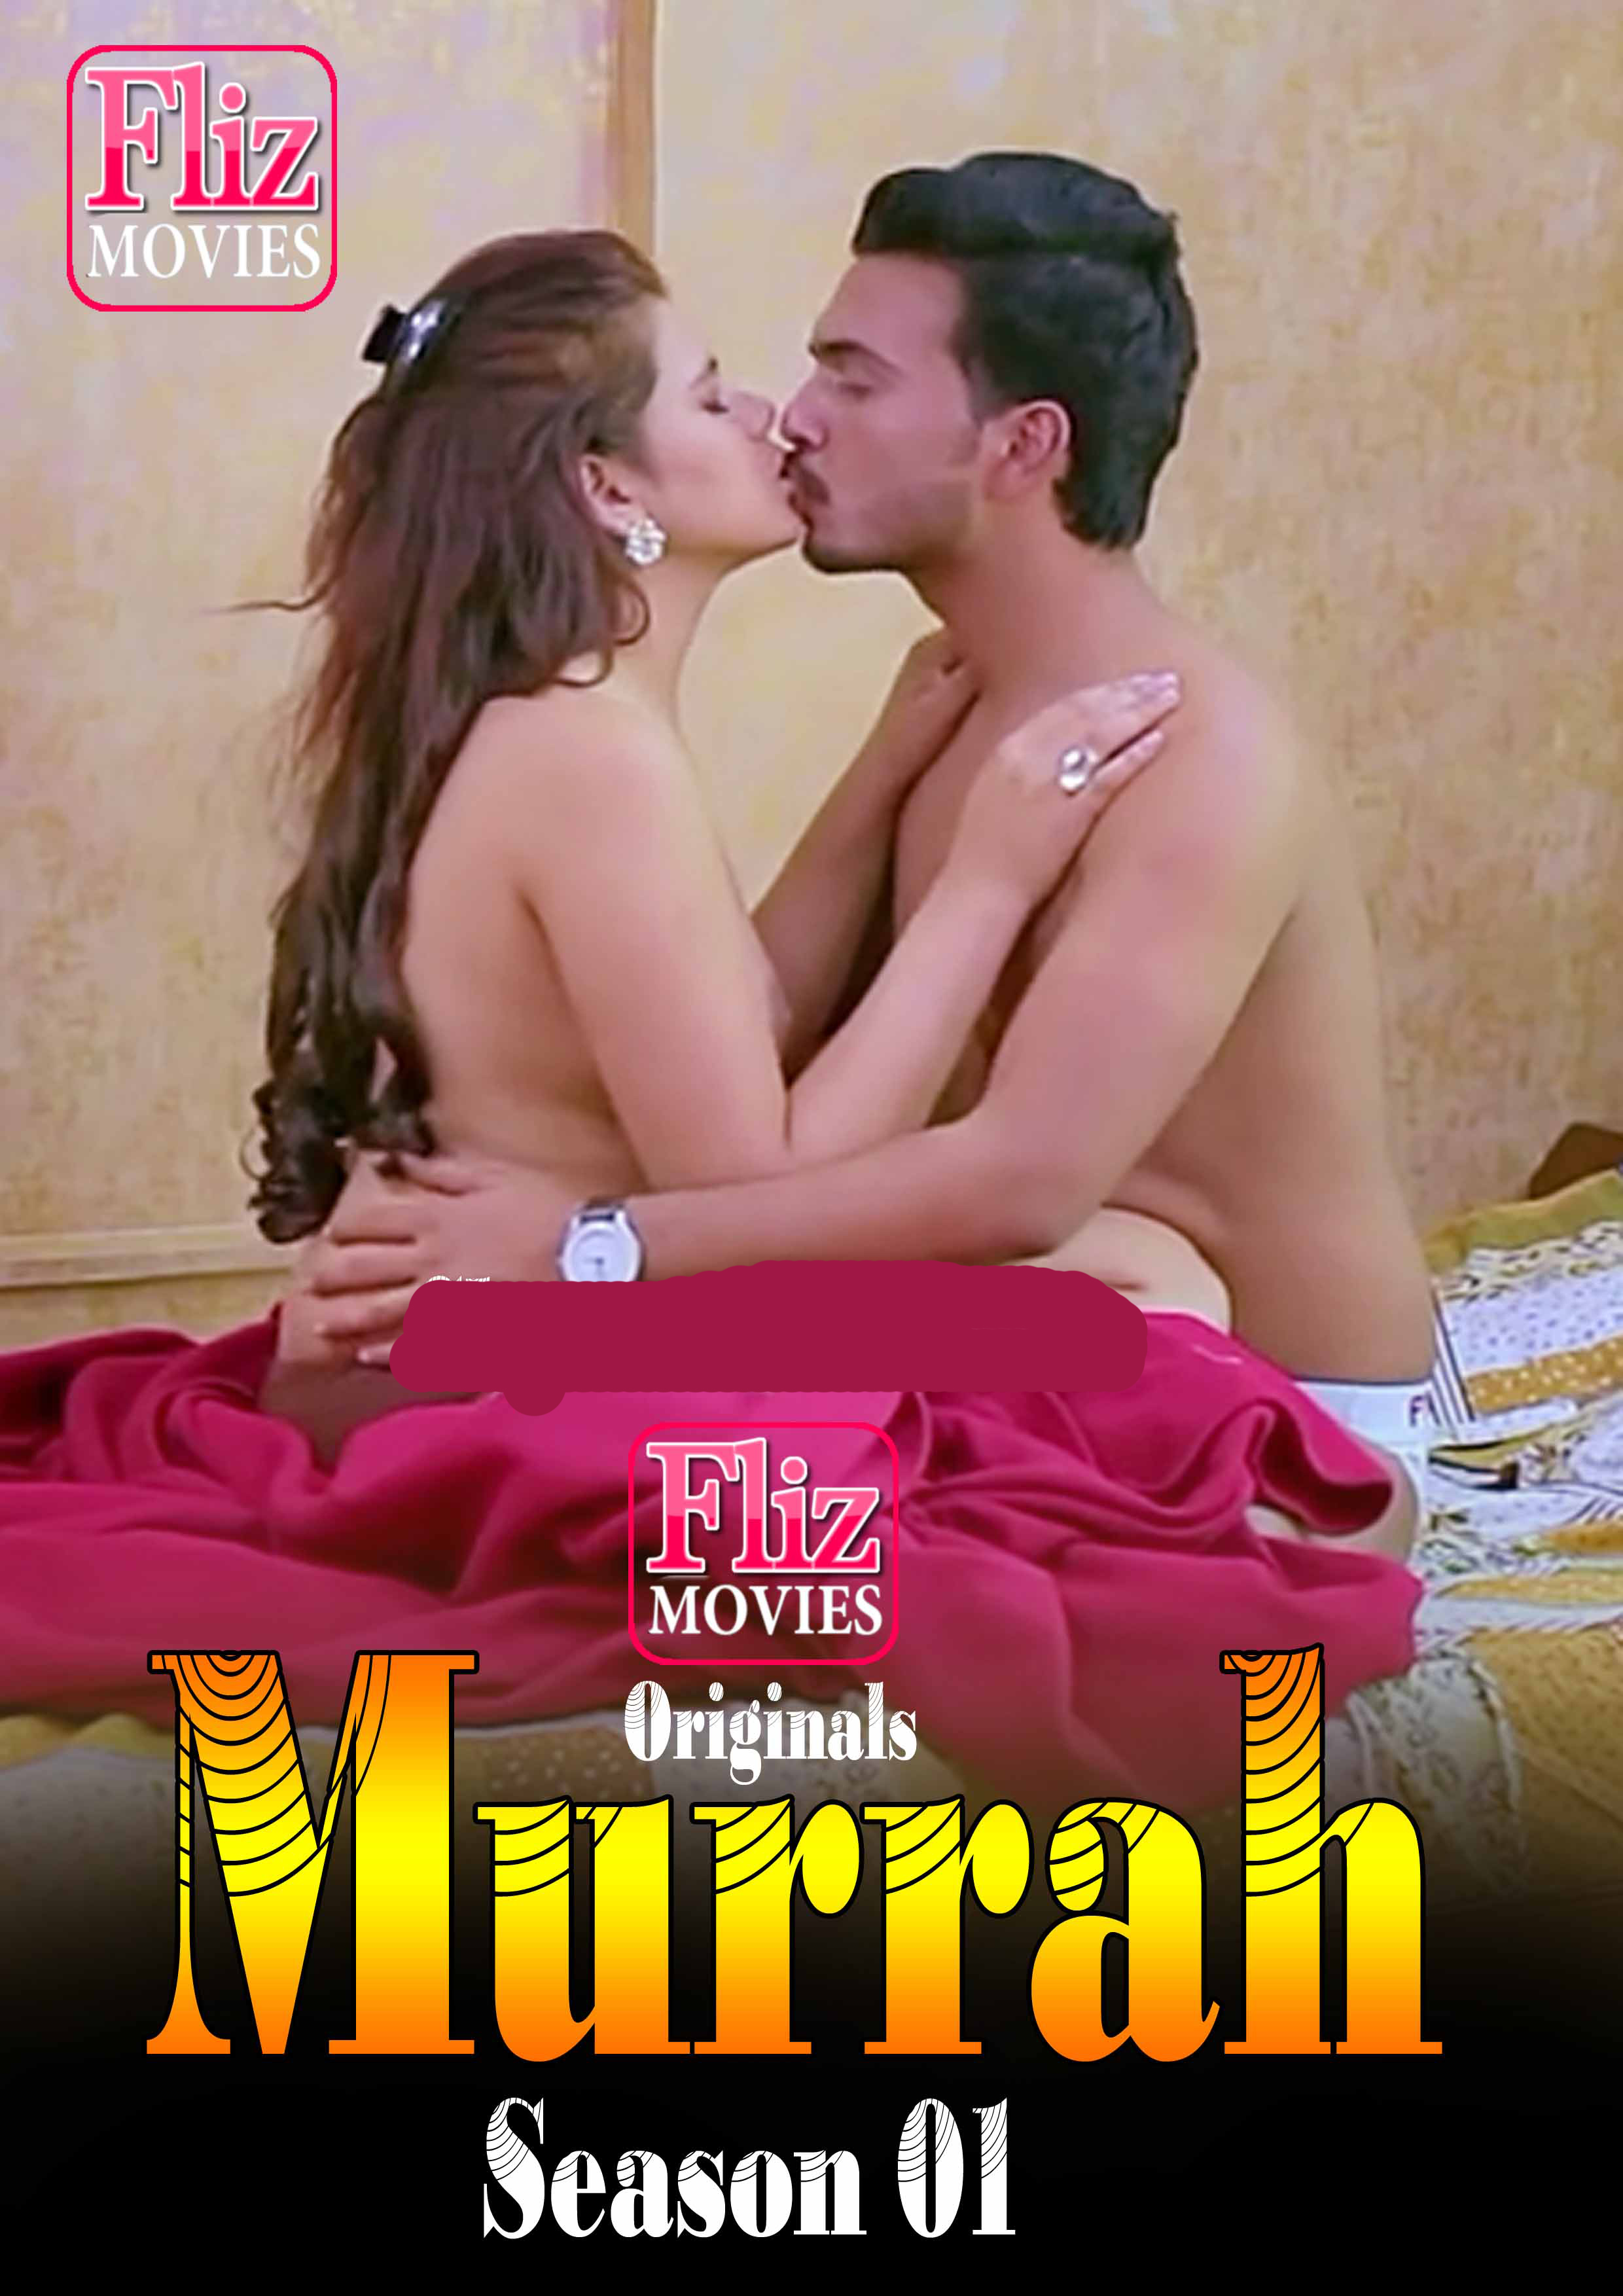 18+ Murrah 2020 Hindi S01E01 Flizmovies Web Series 720p HDRip 200MB